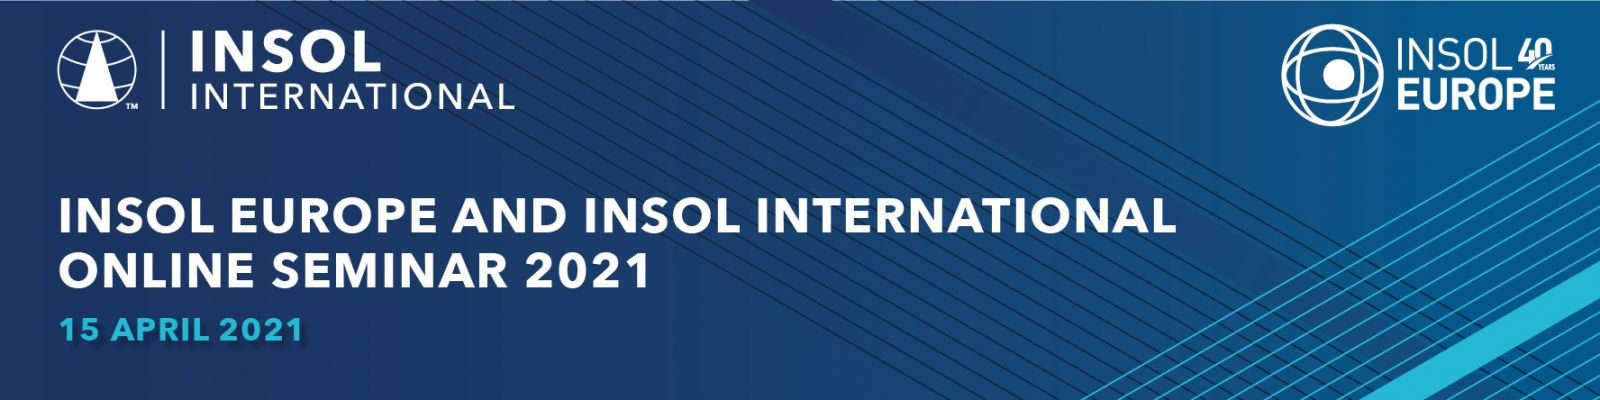 Joint INSOL Europe and INSOL International Online Seminar